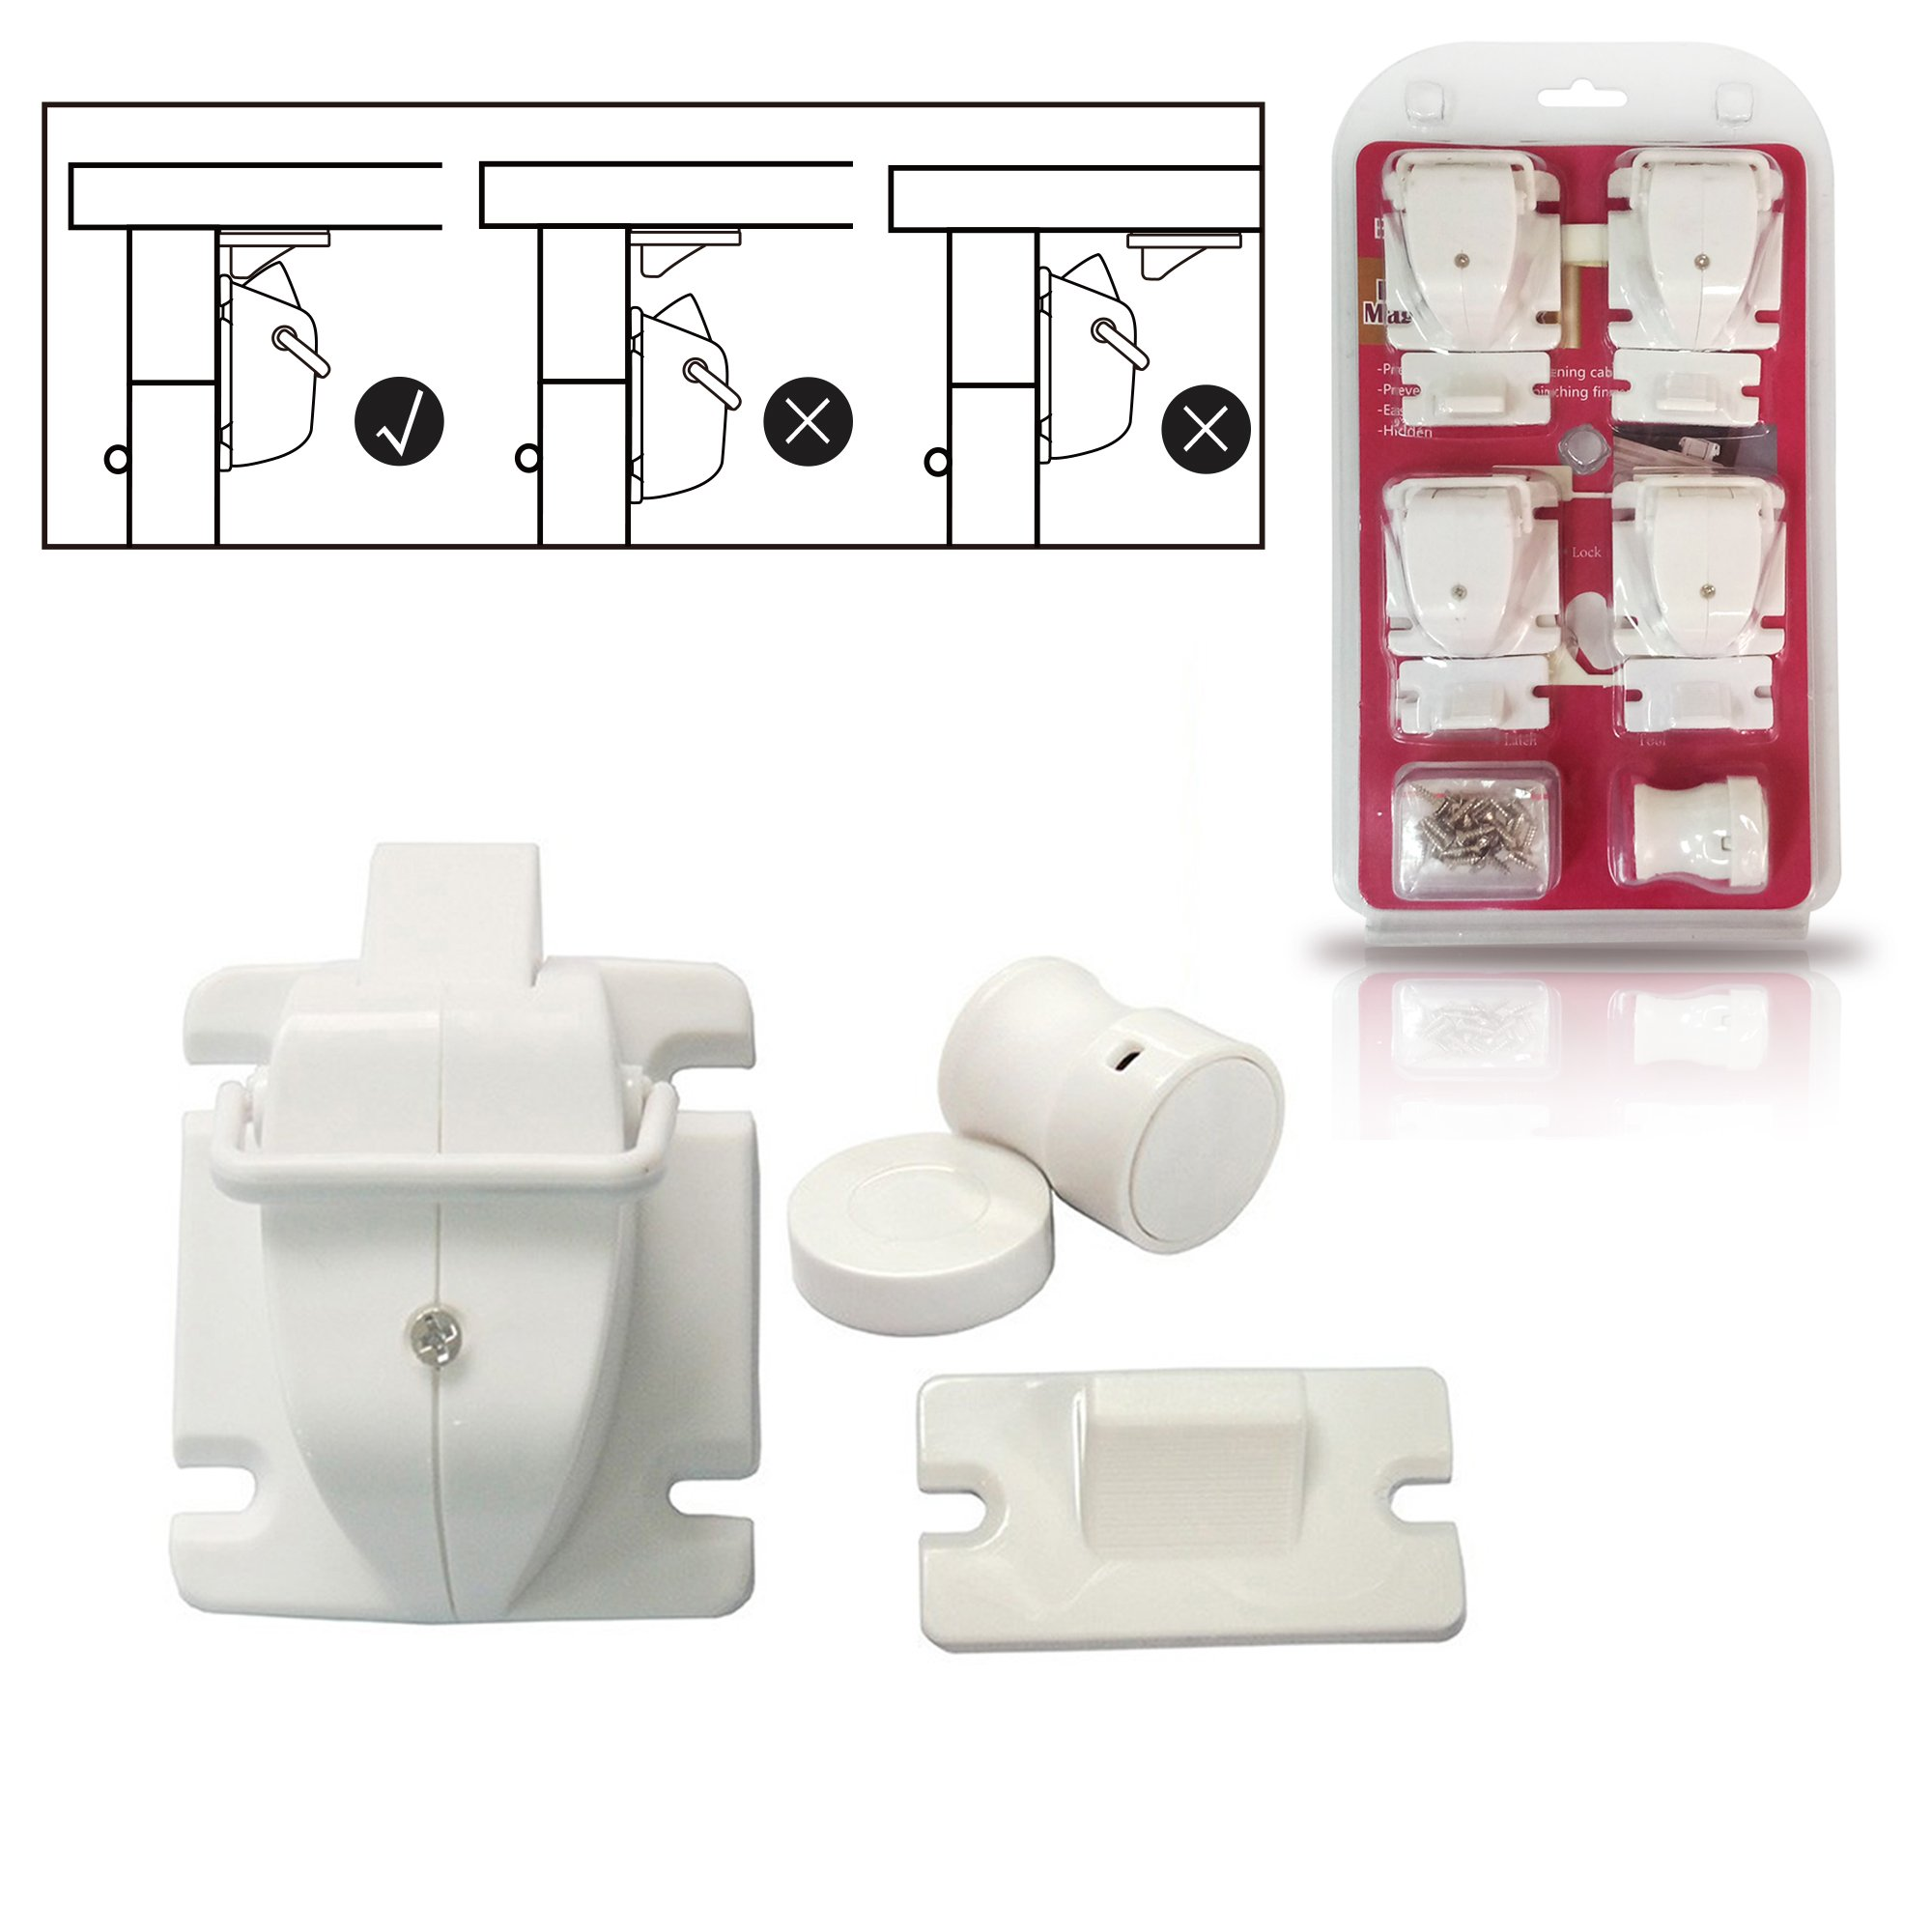 FixtureDisplays Magnetic Cabinet Locks for child safety - No Tools Or Screws Needed (4 Locks + 1 keys) with 1 Installation Tool 16951